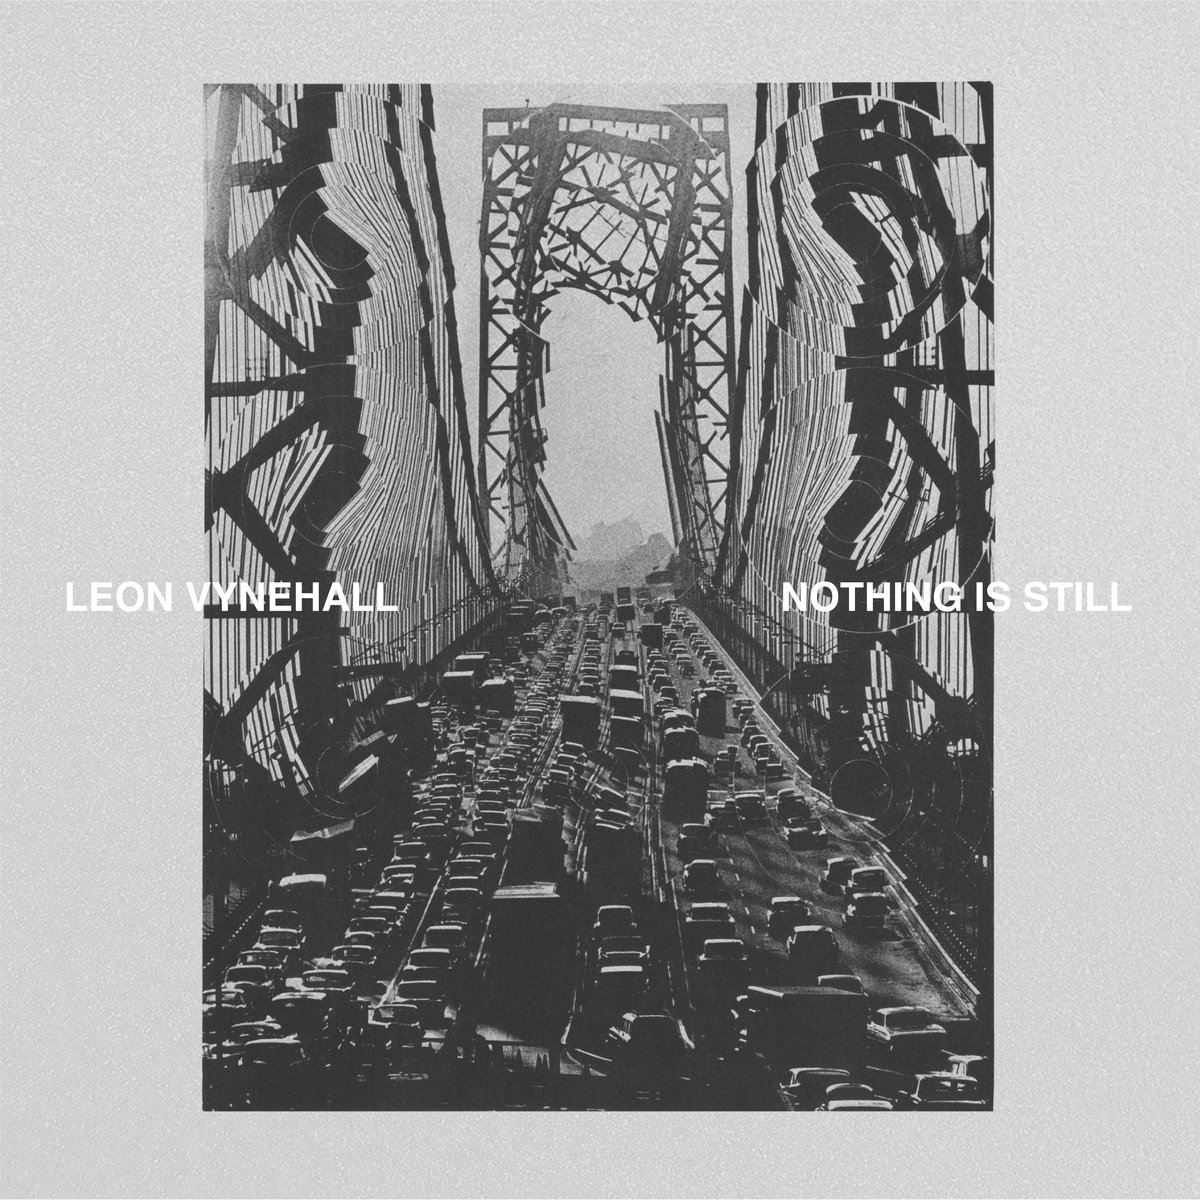 Leon Vynehall – Nothing Is Still